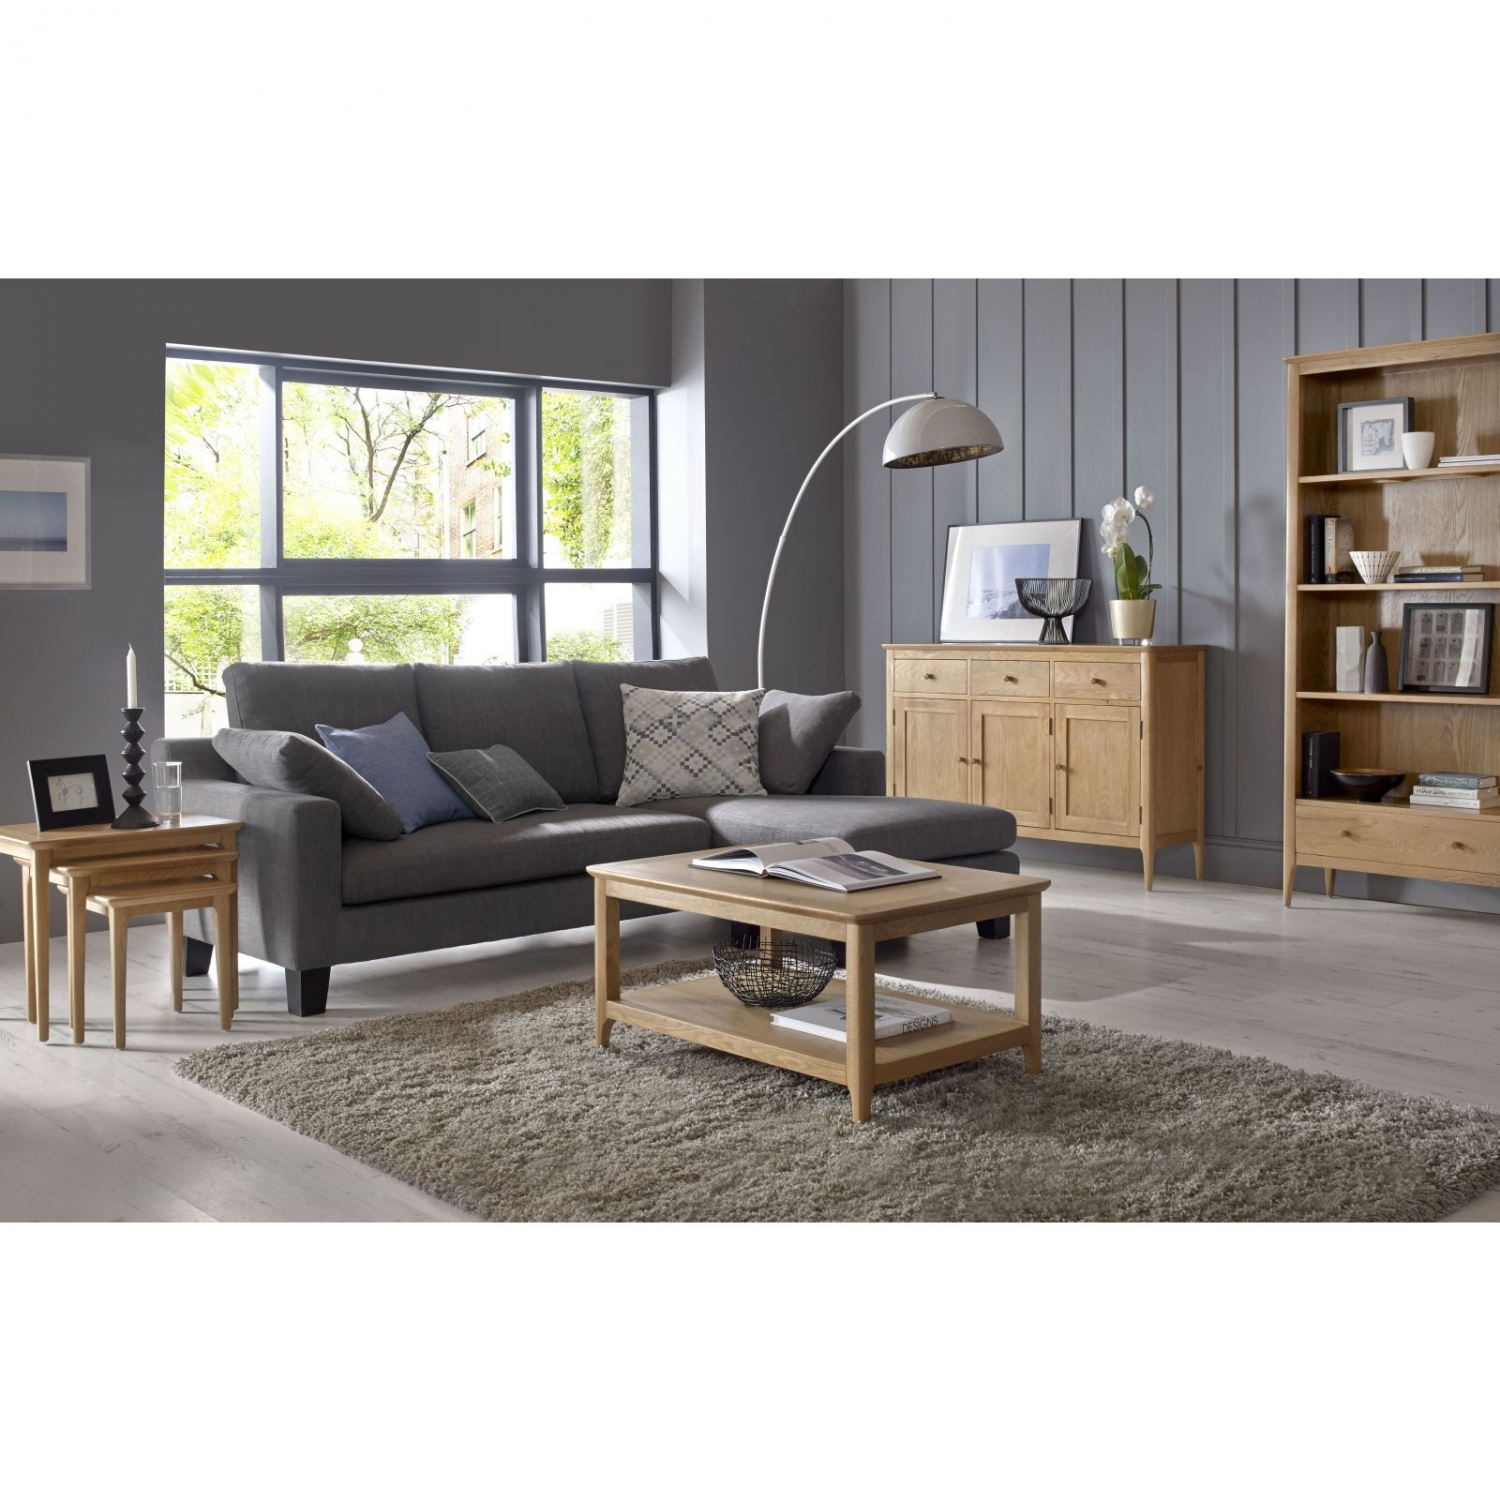 Telford solid oak furniture low living room office for Low living room furniture